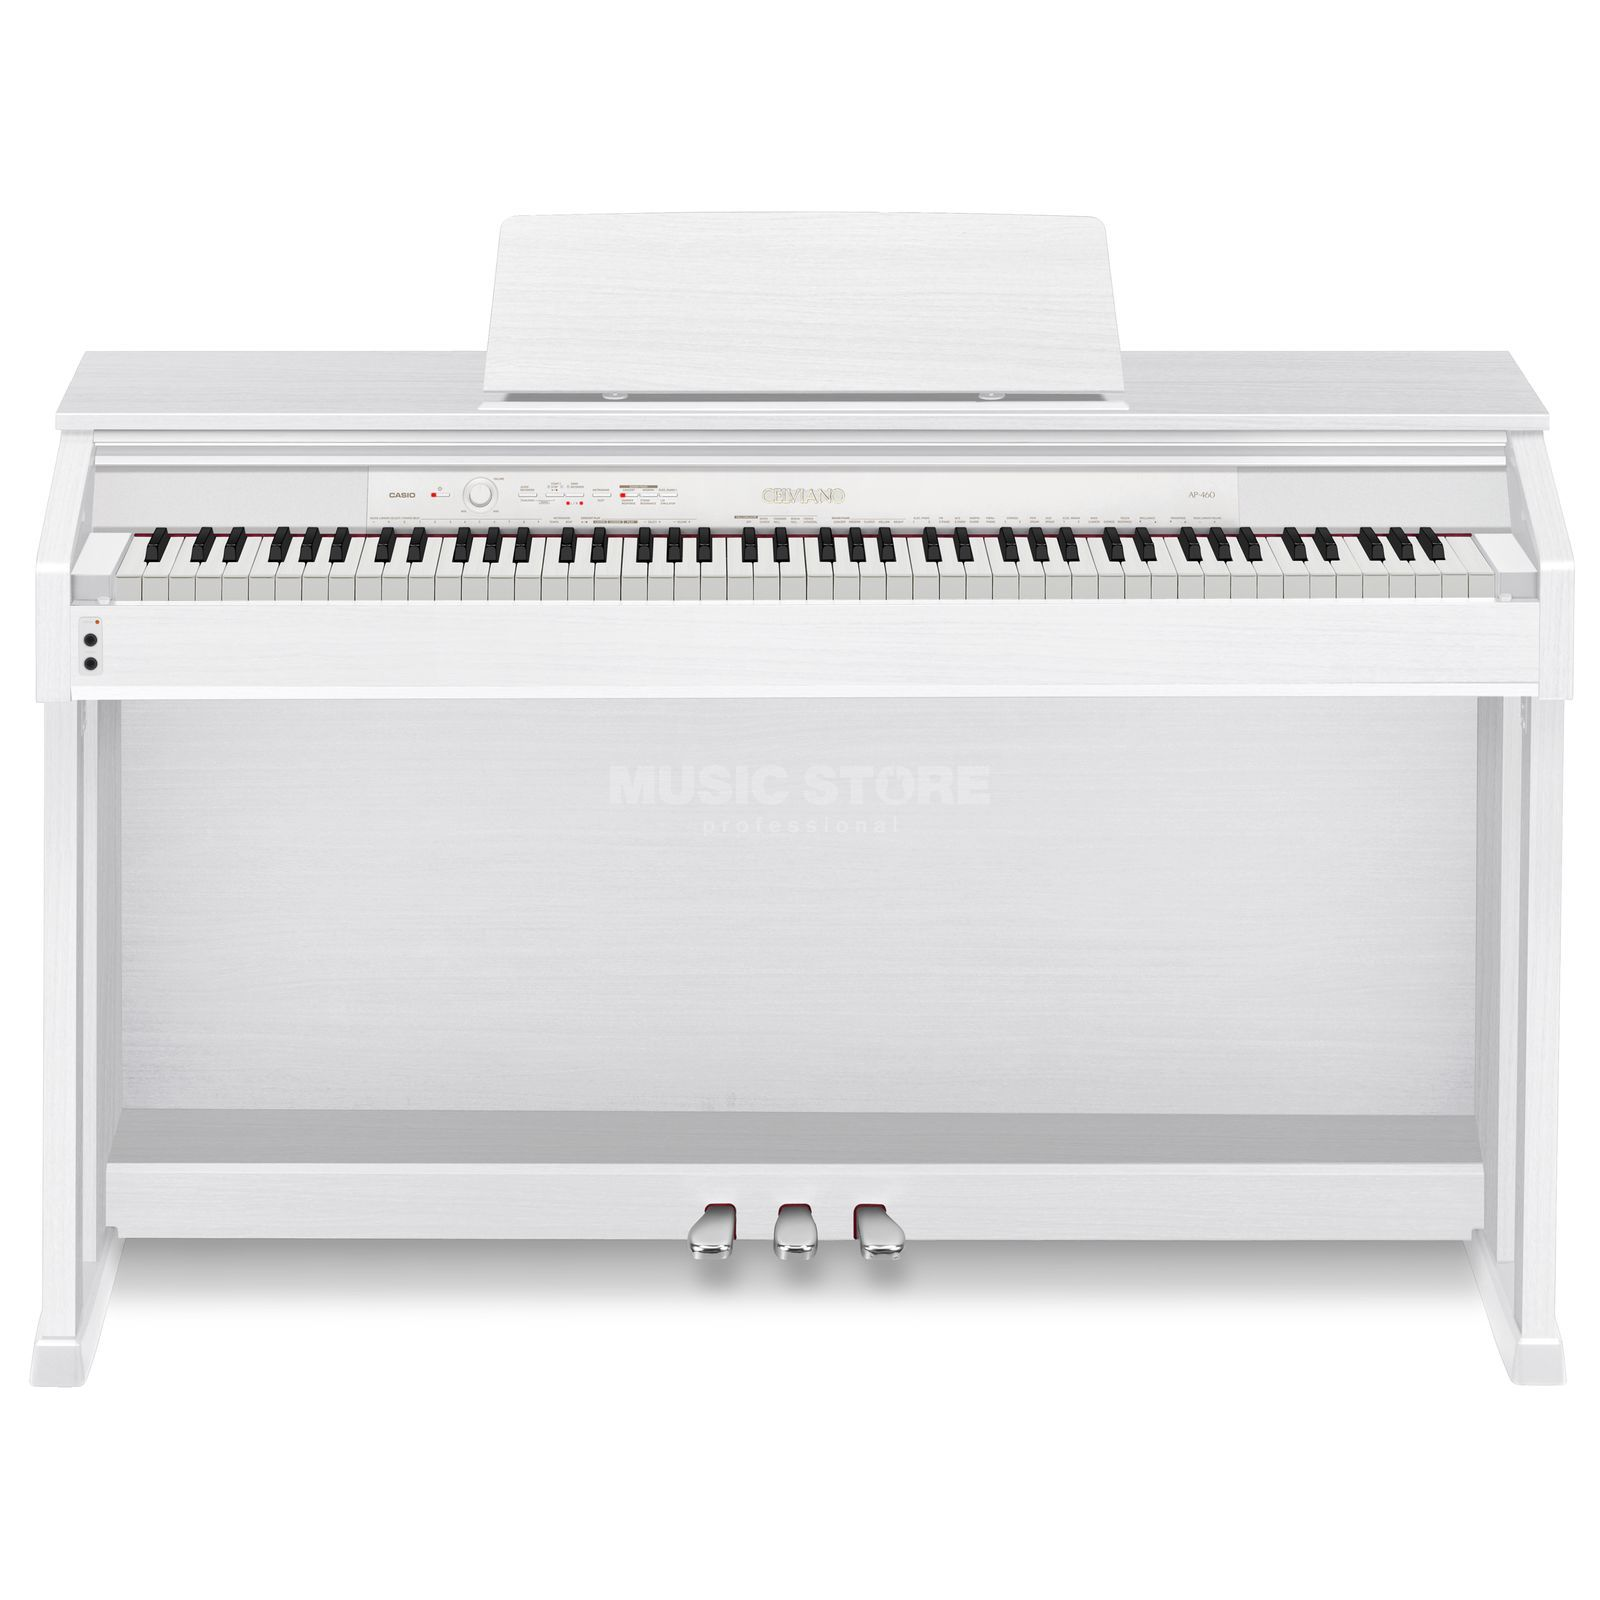 Casio AP 460 WE Digital Piano White Product Image